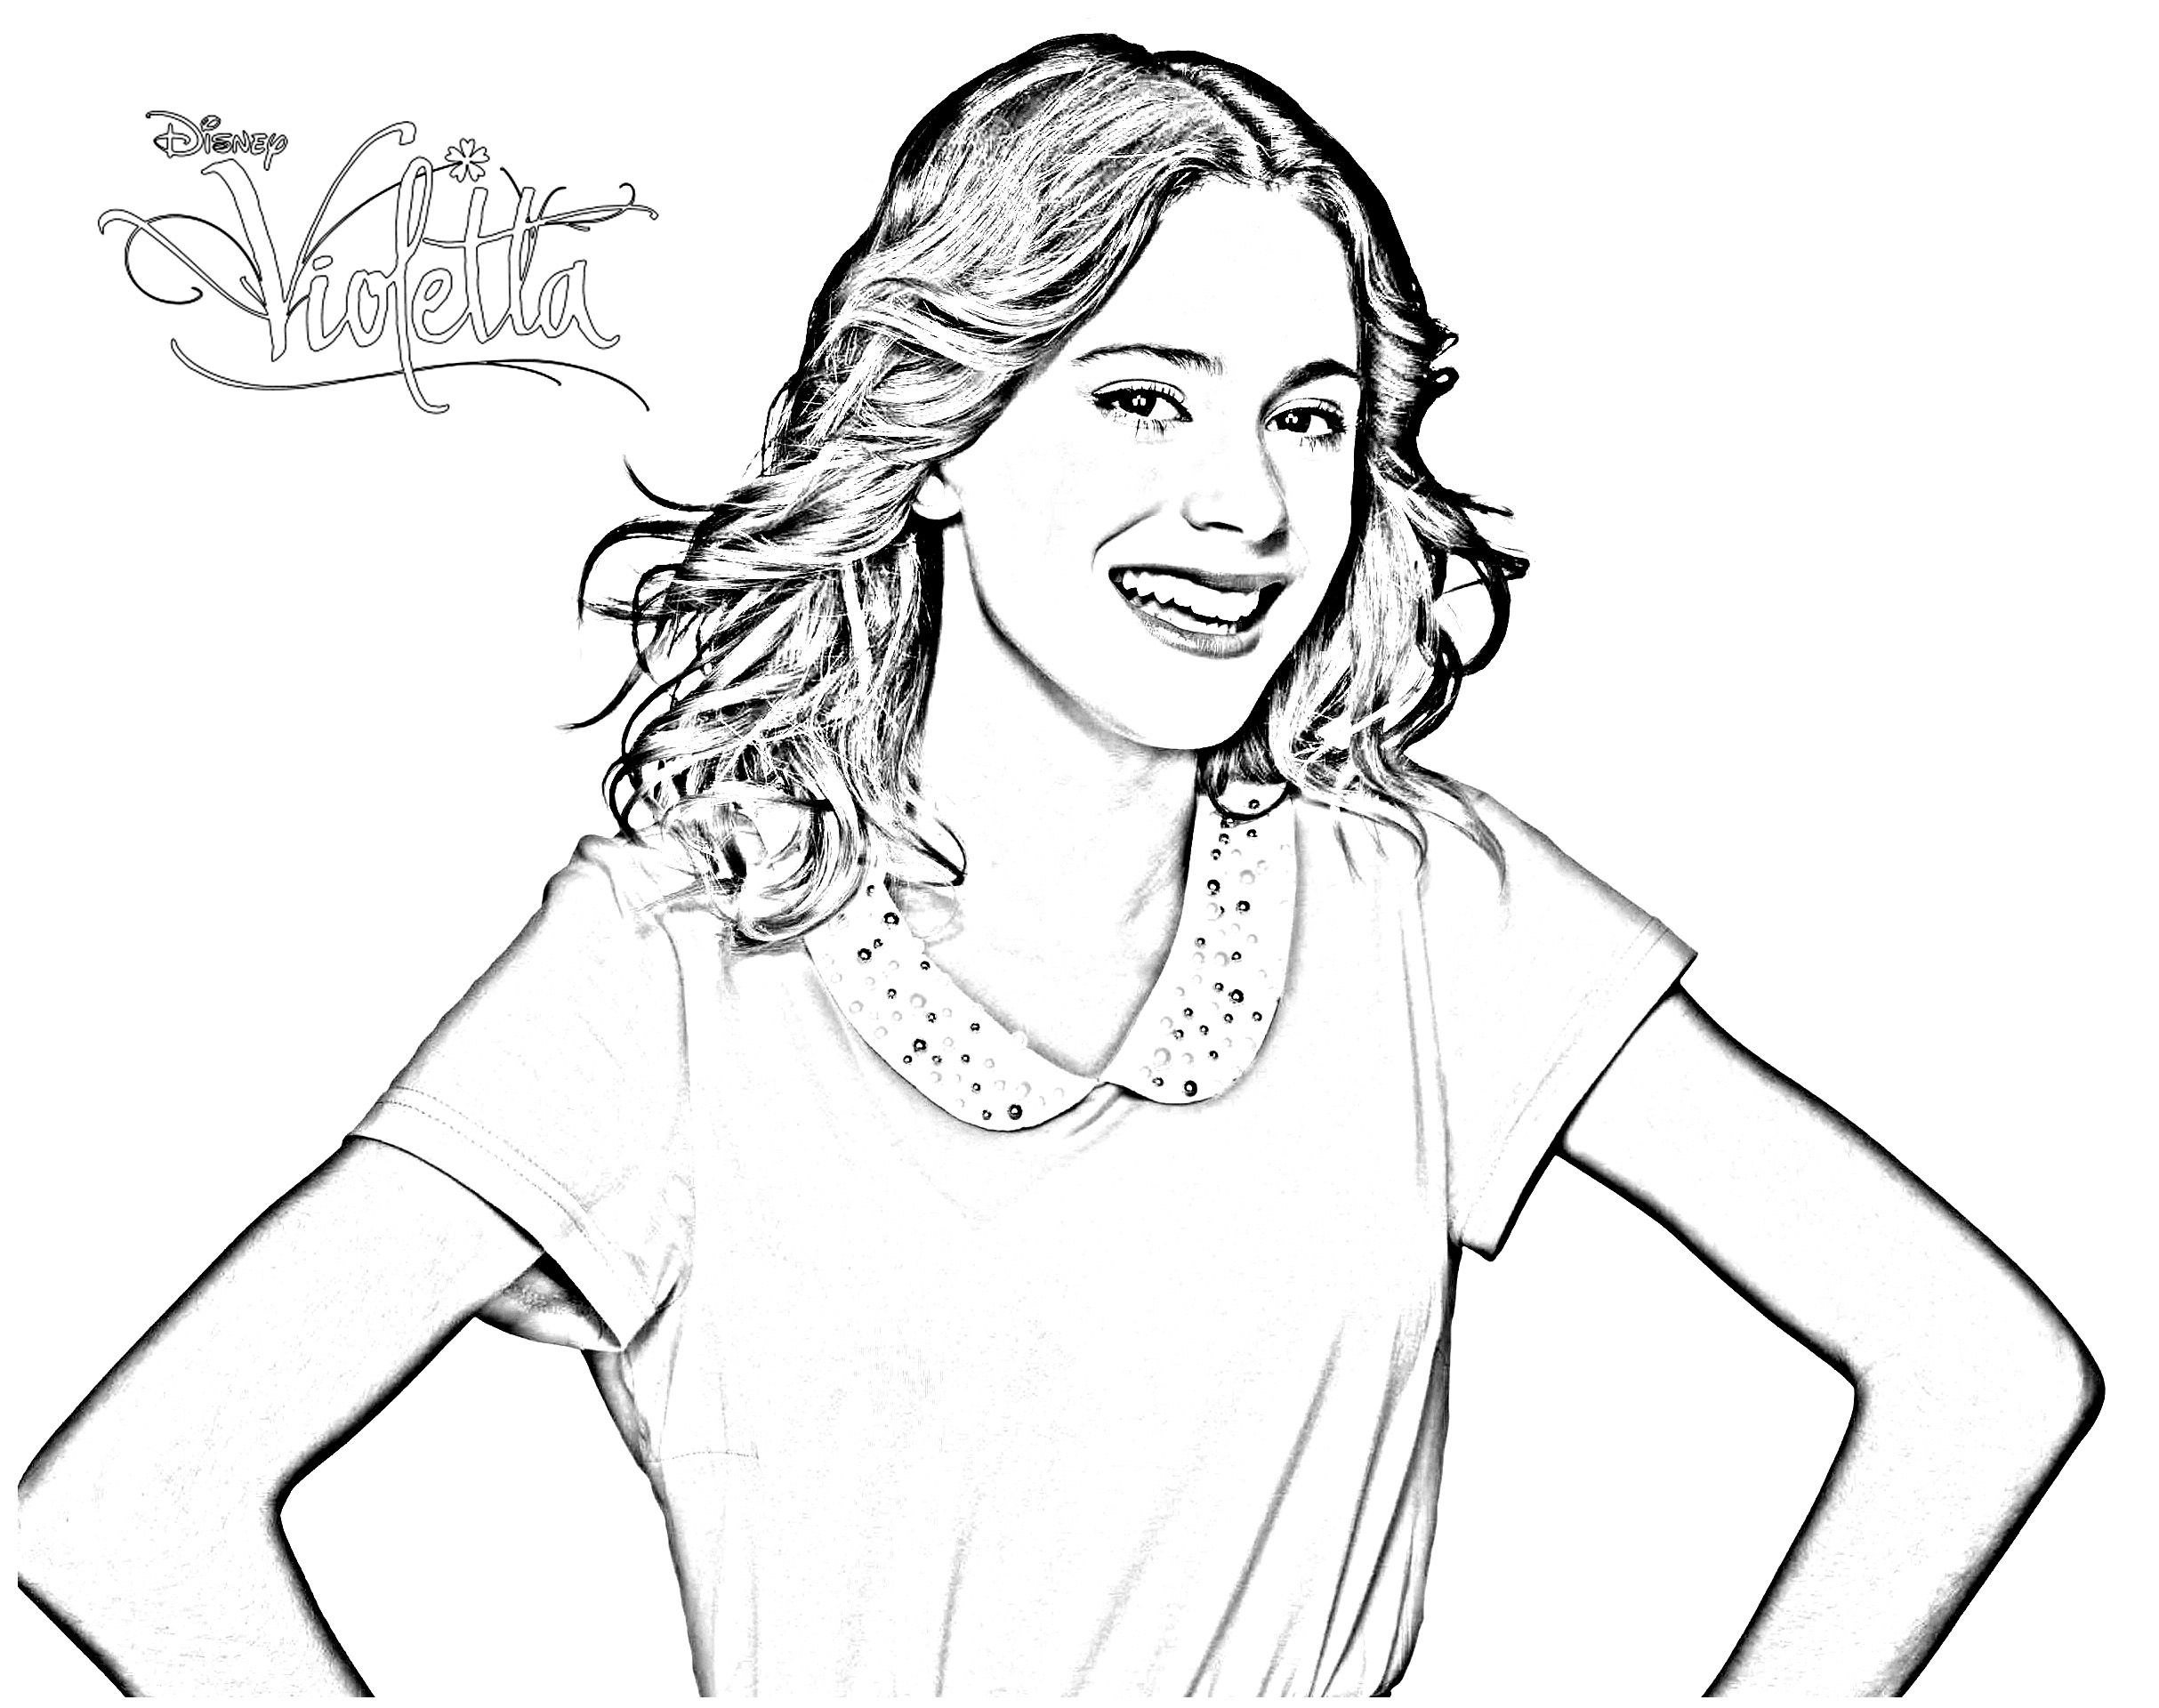 Violetta coloring pages coloring for kids coloring simple violetta